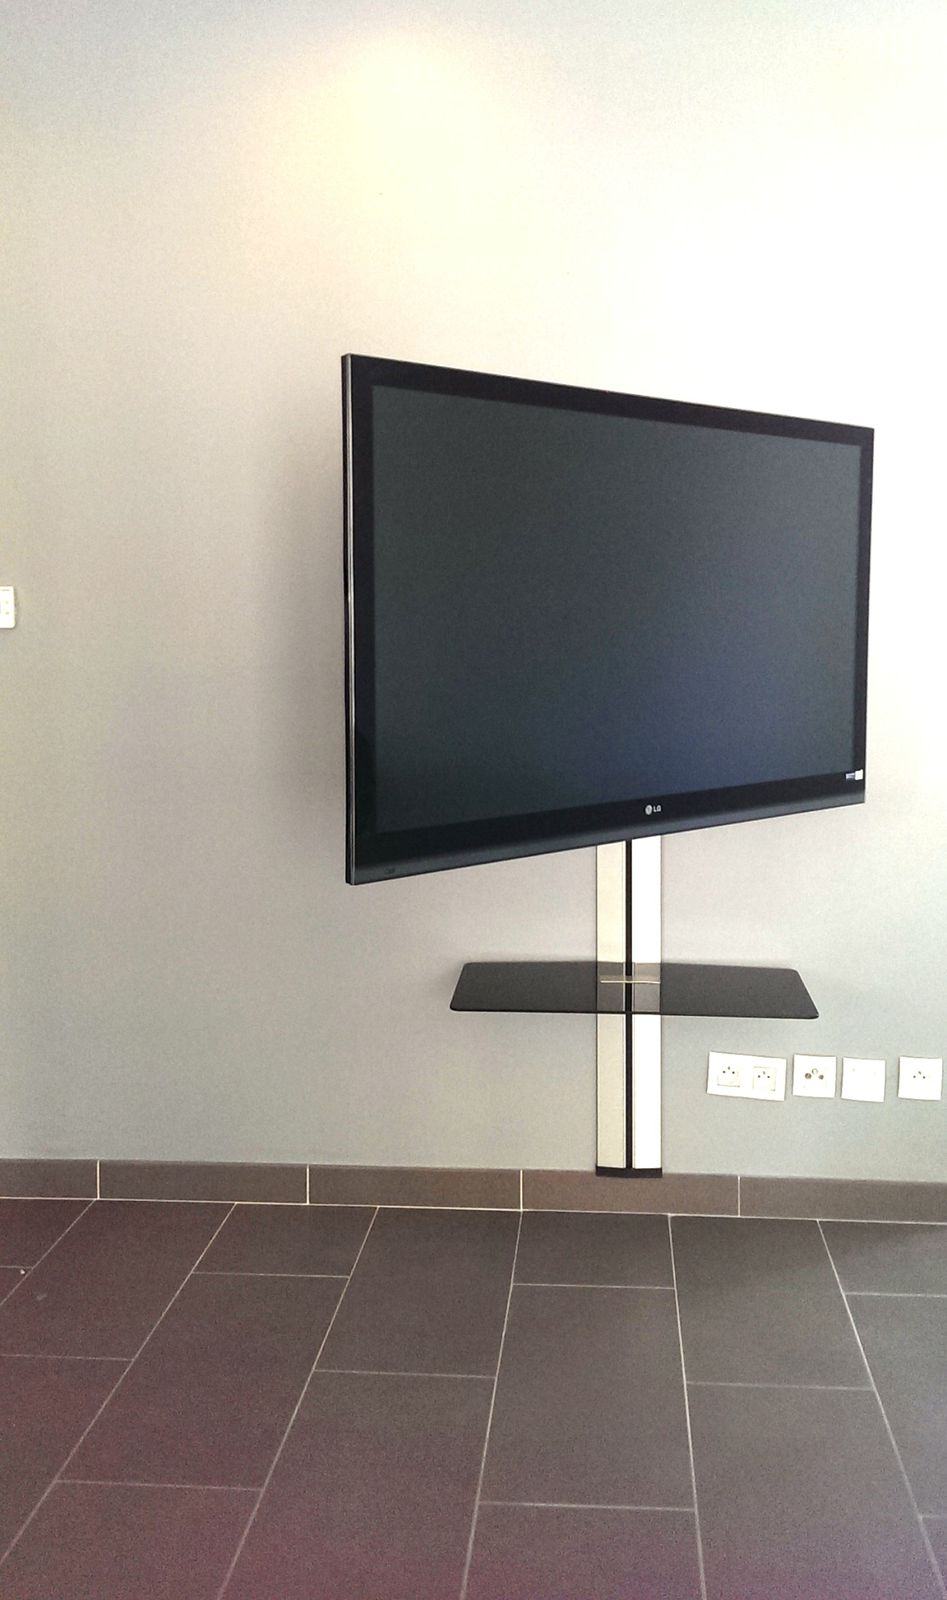 Tv Au Mur Cacher Les Cables Maison Design Bahbe Com # Comment Accrocher Les Planches A Tv Au Mur